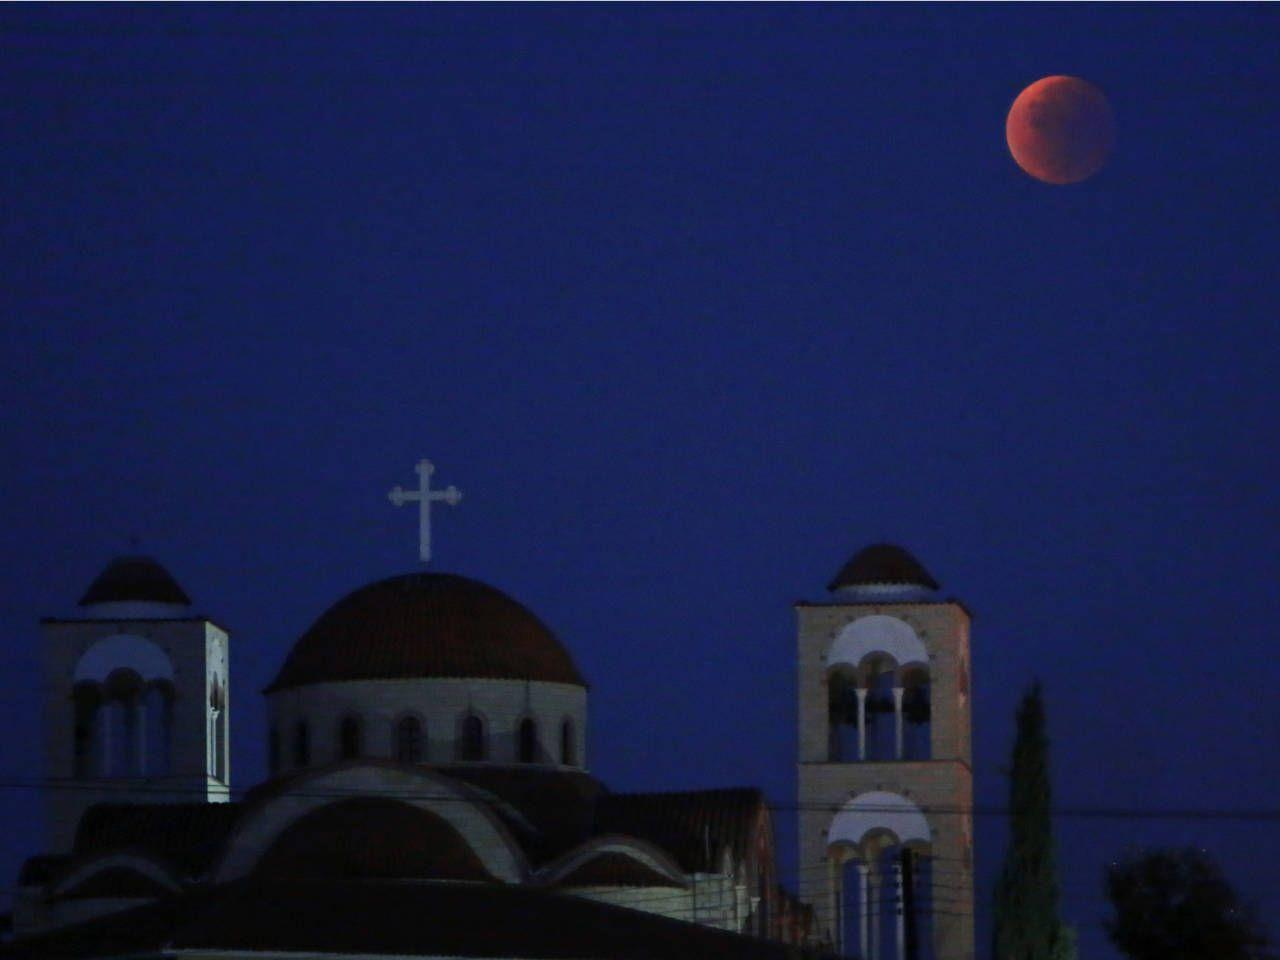 Blood moon magic: 17 amazing images of the supermoon around the ...